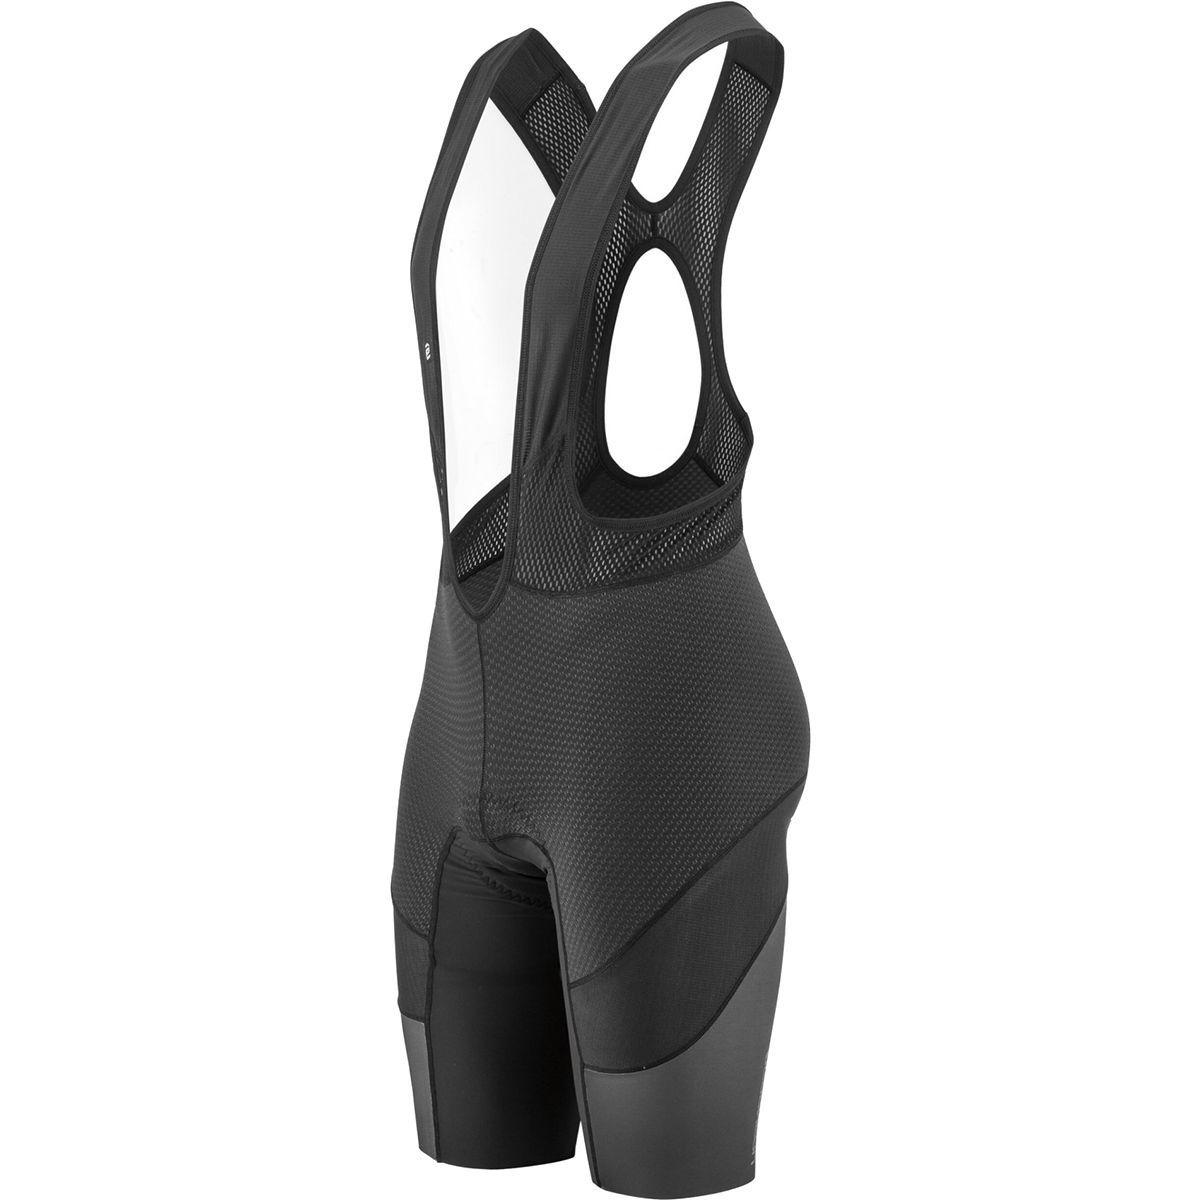 Louis Garneau Cb Carbon Lazer Bib Shorts - Men's